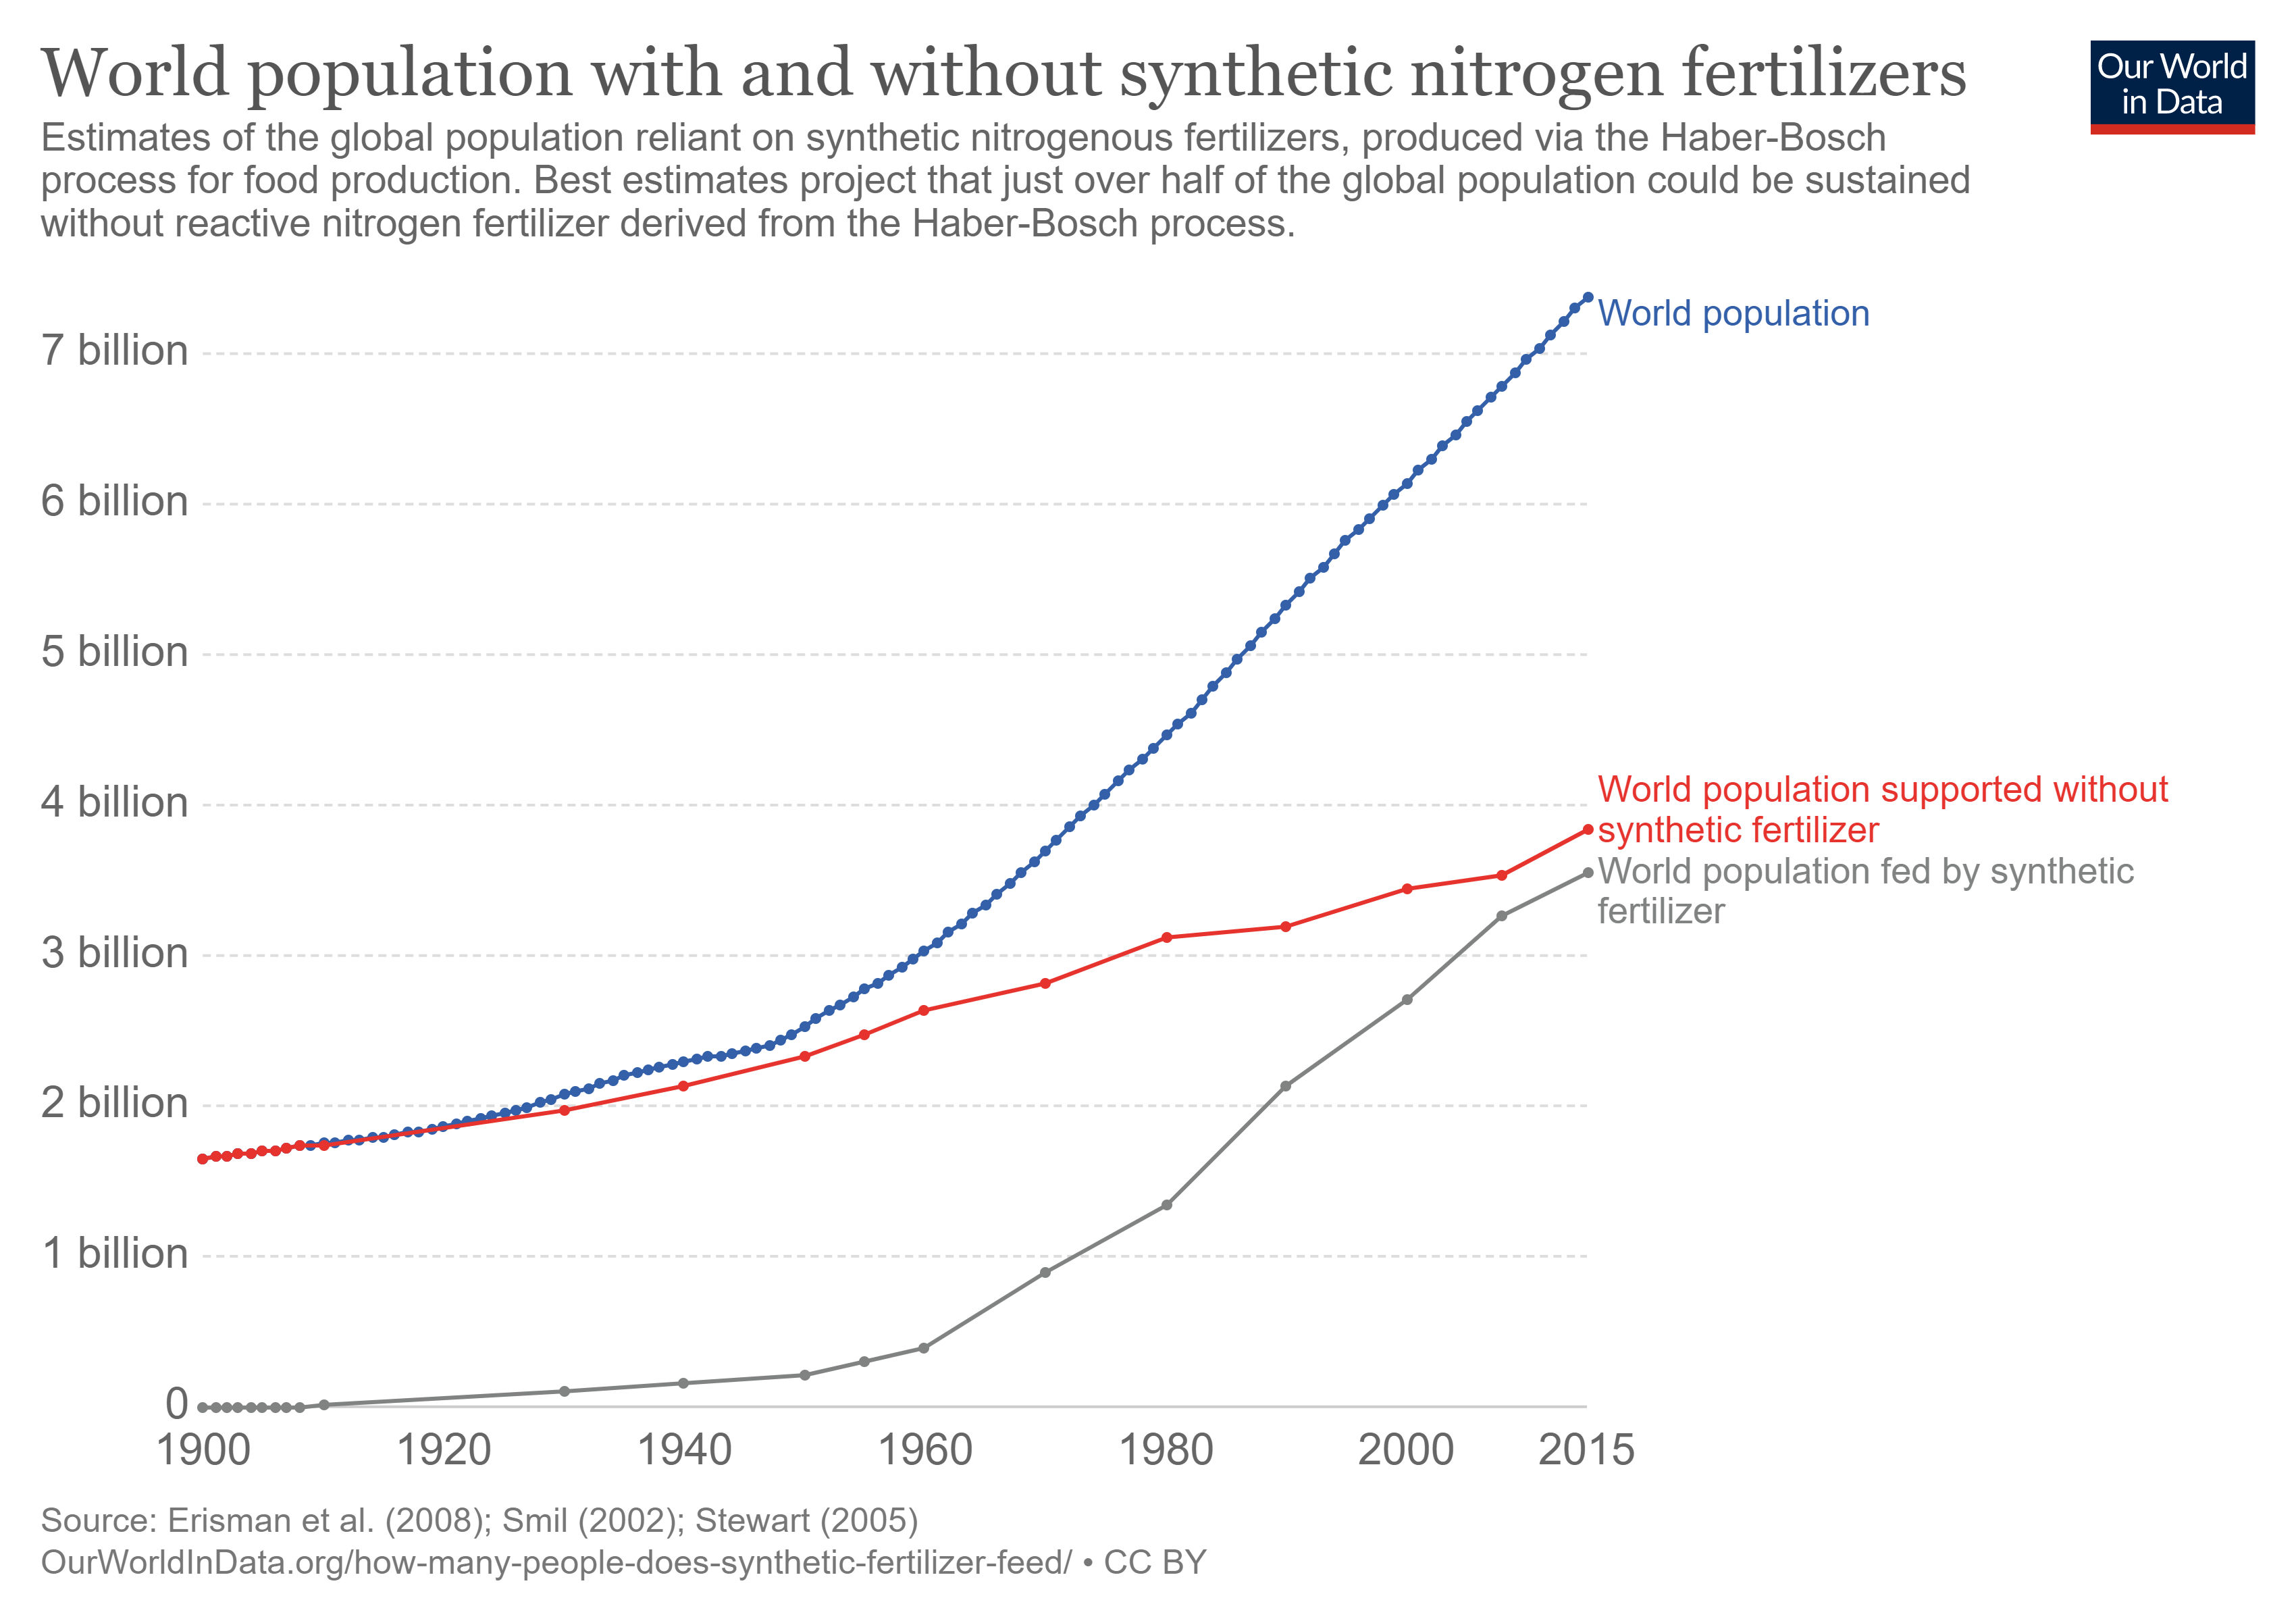 World population supported by and without fertilizers